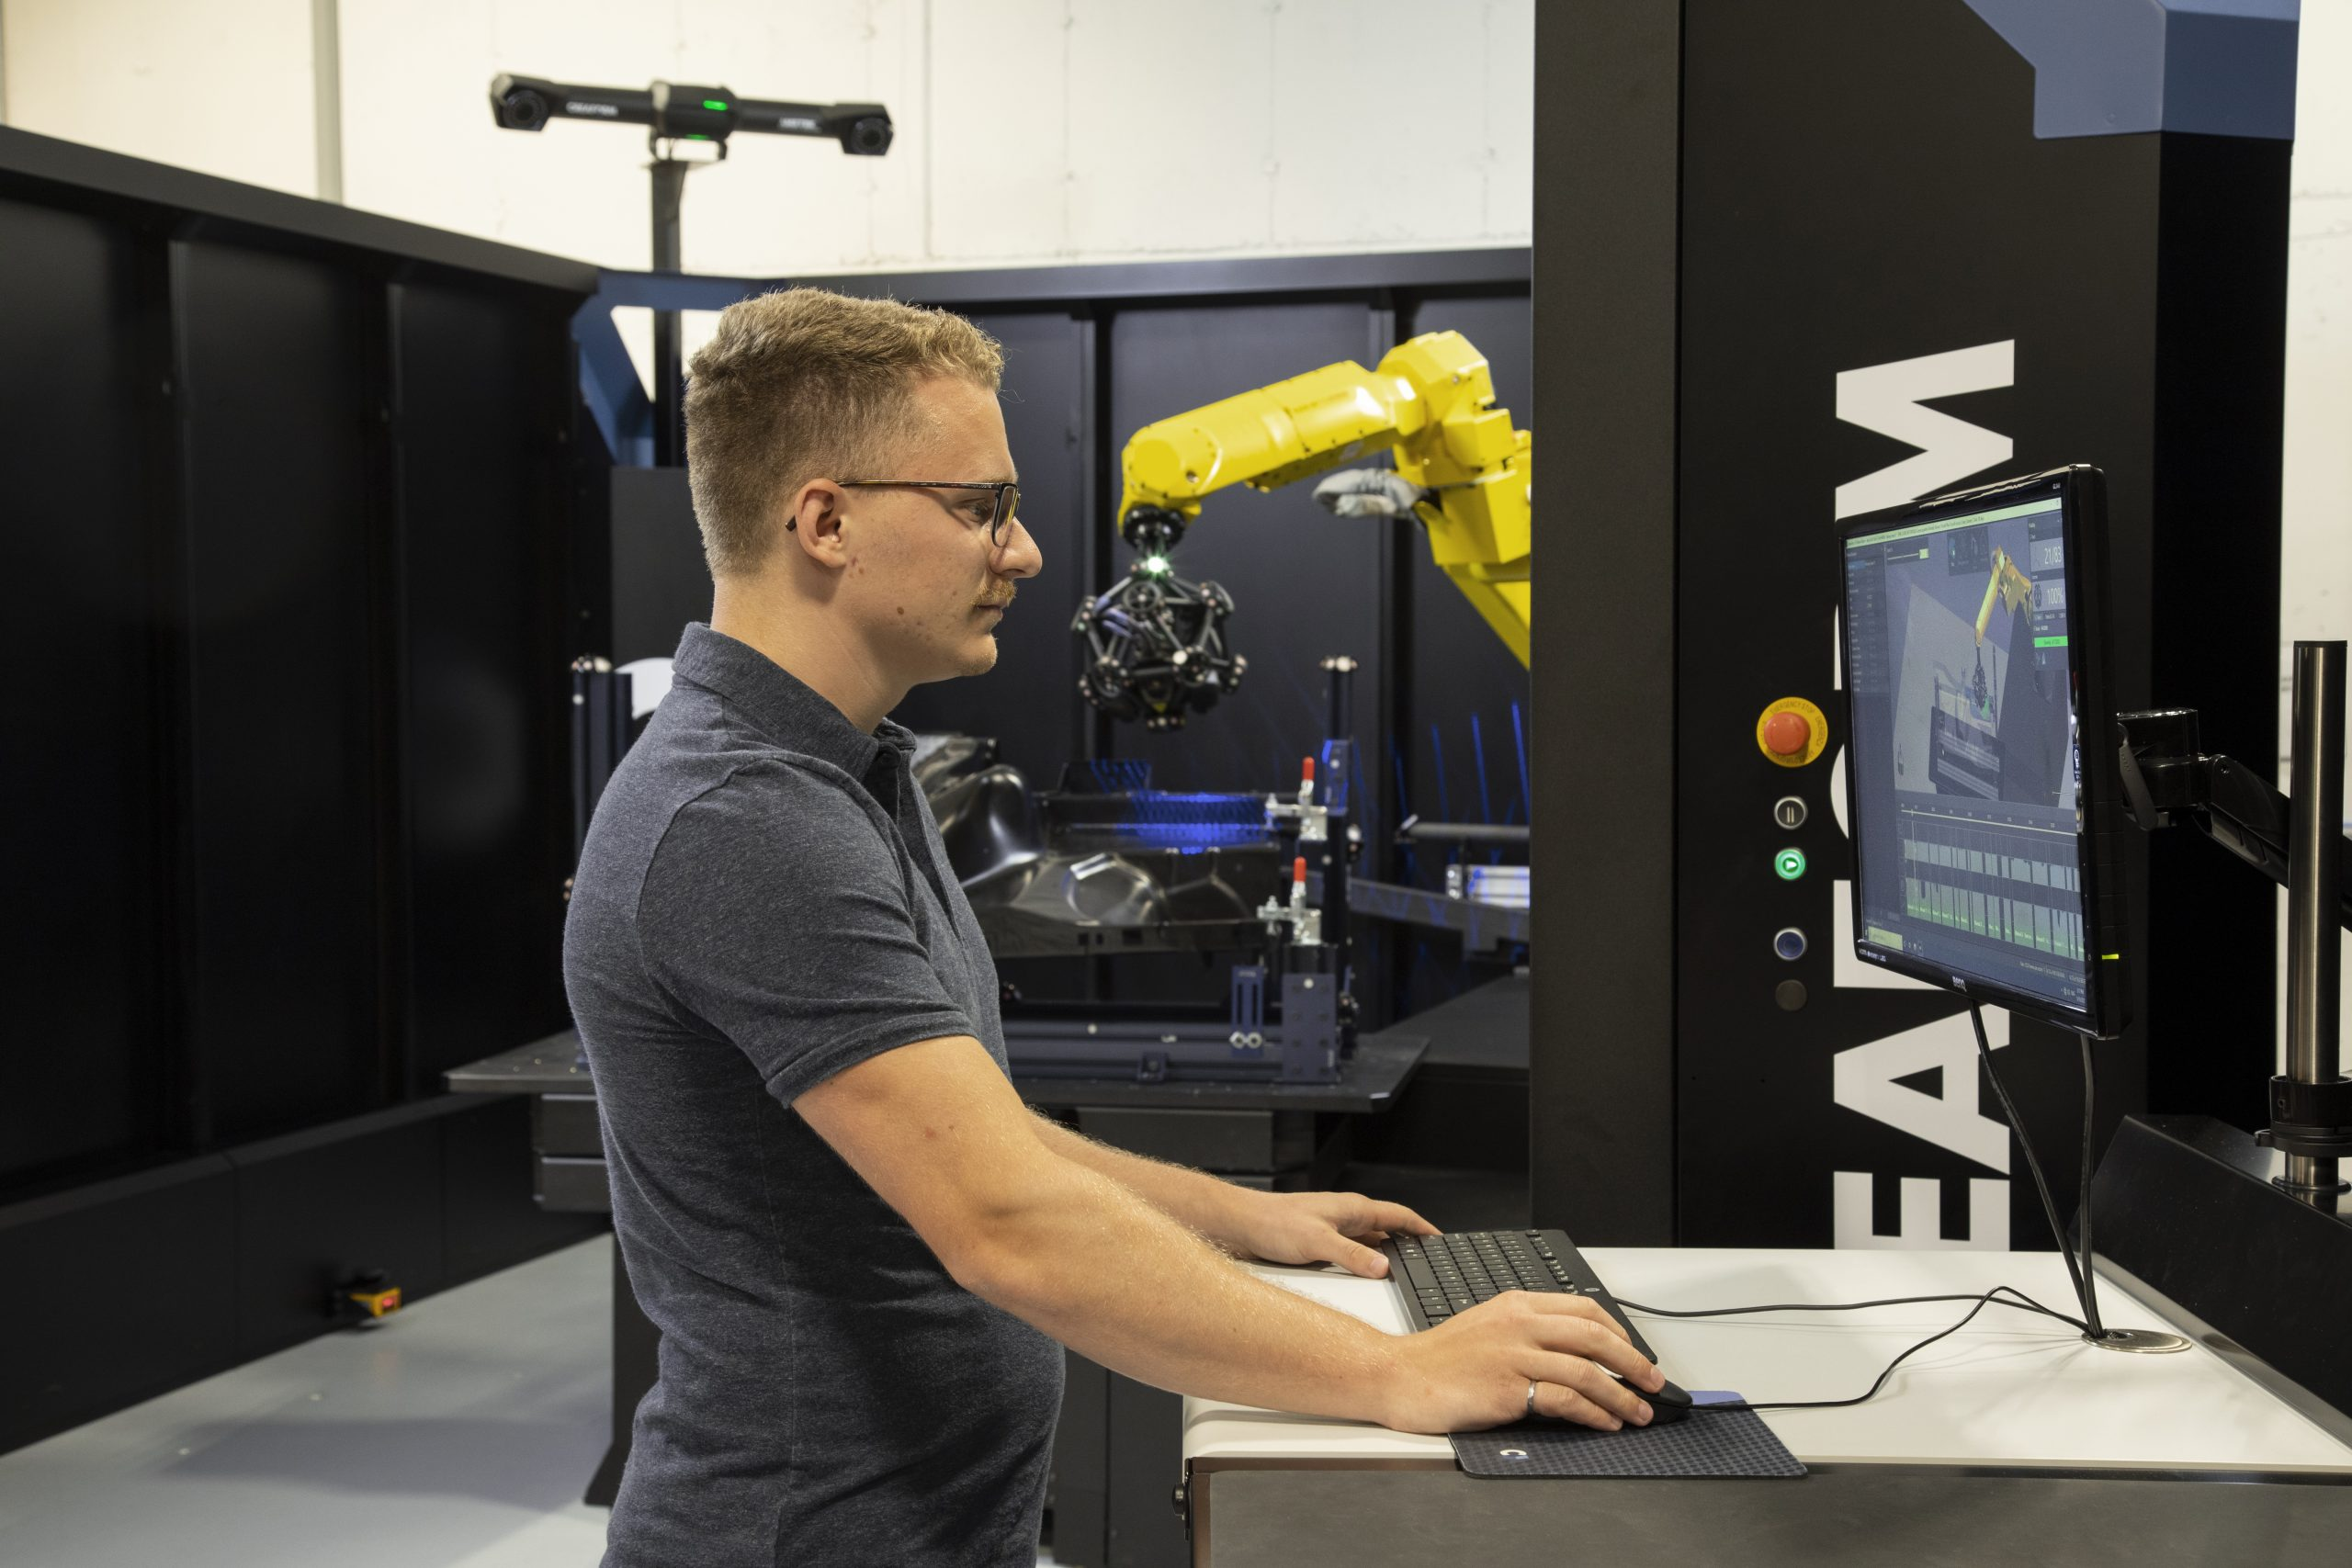 Man in front of computer screen with VXscan-R software controlling R-Series robot mounted MetraSCAN 3D with C-track scanning black bumper part